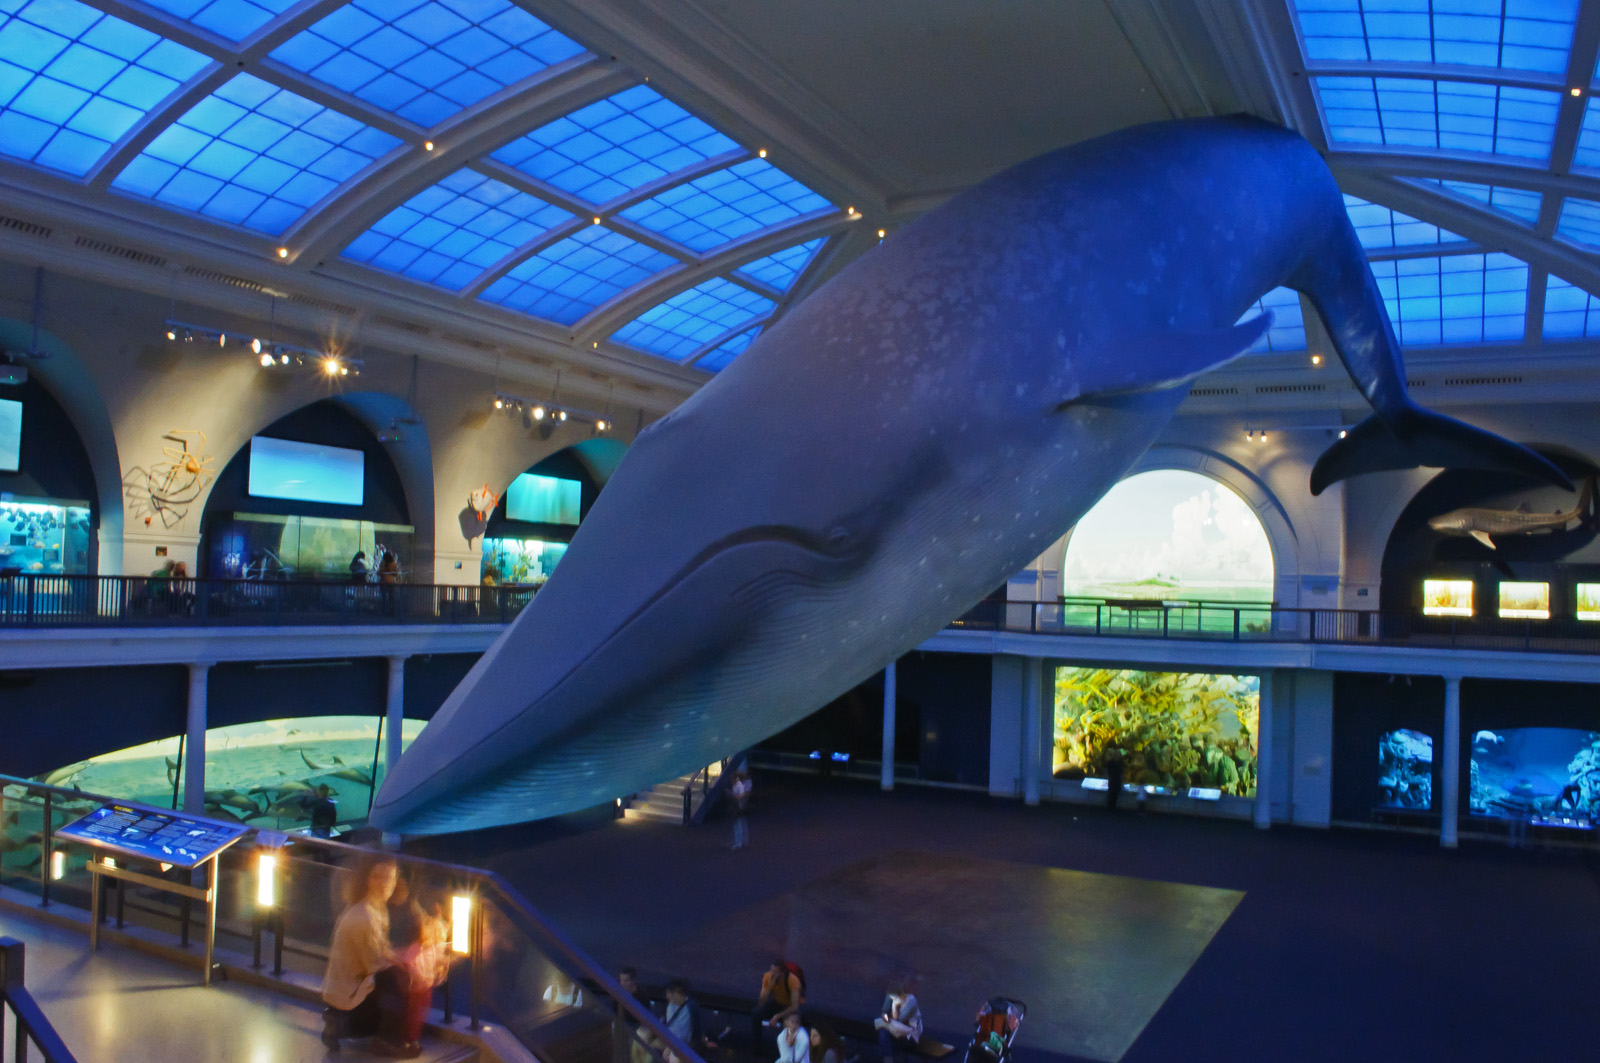 The inside of AMNH, with a large blue whale model hovering over everything